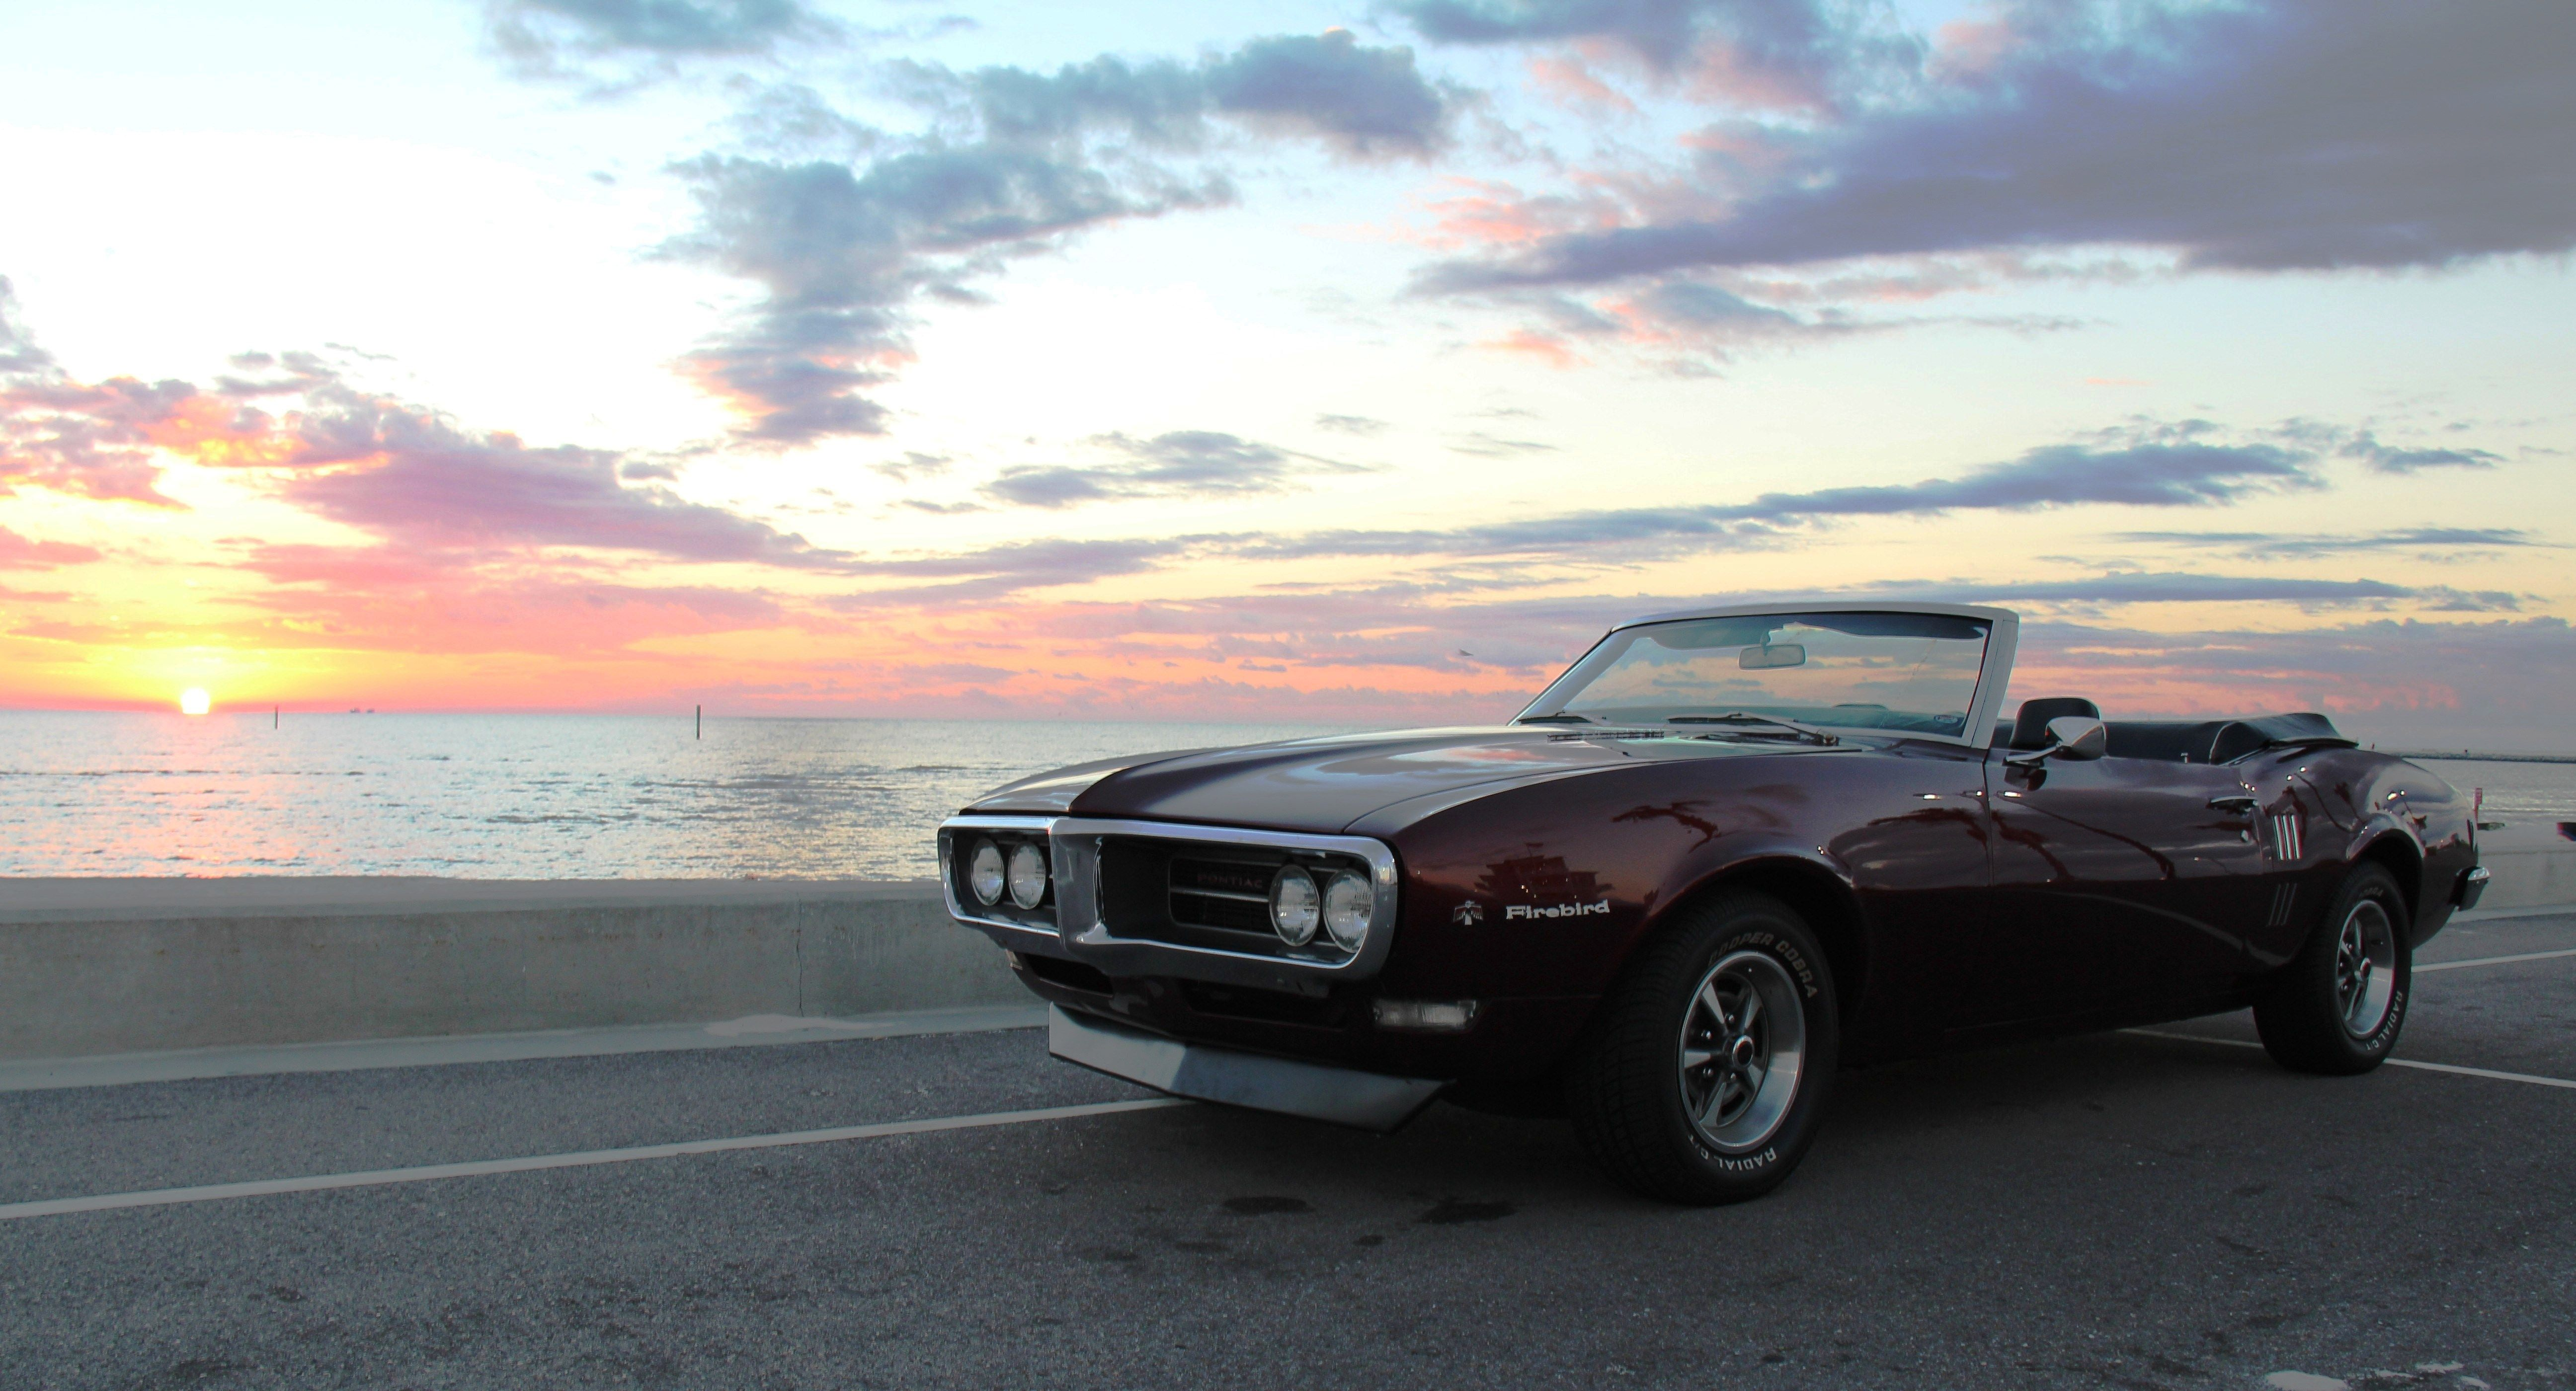 Here's Why The Pontiac Firebird Sprint is the Most Underrated Muscle Car